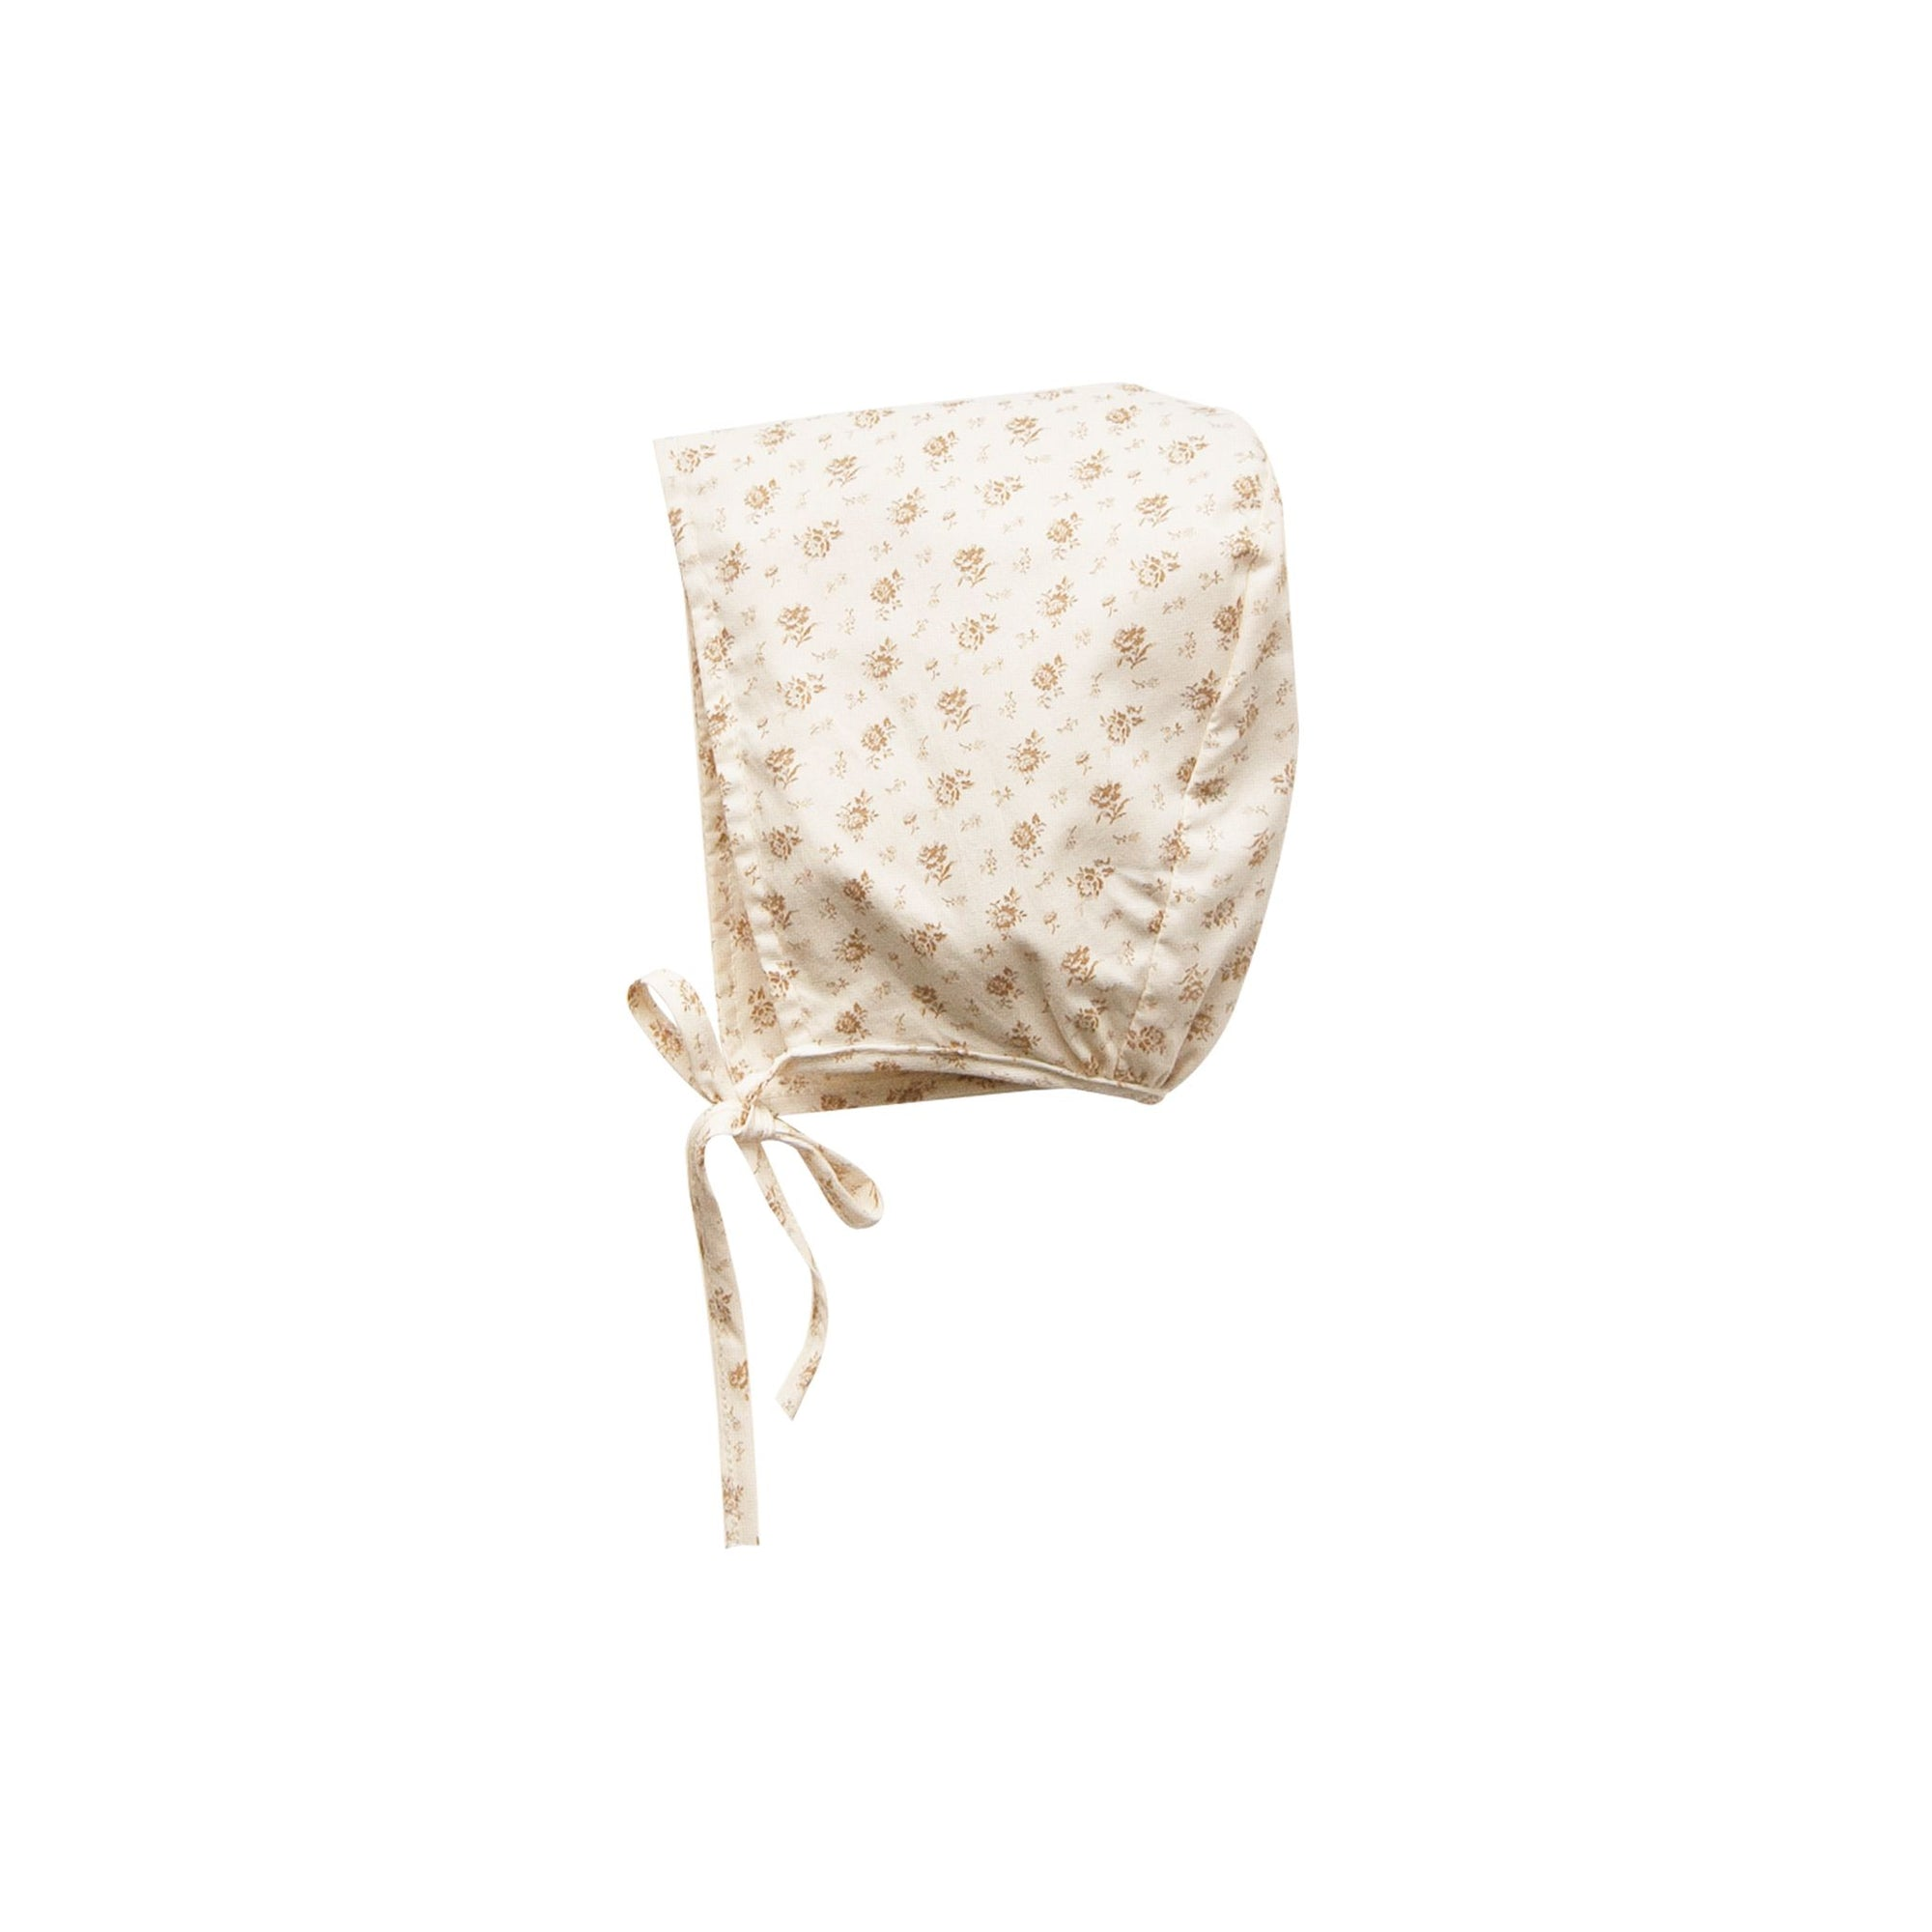 Go Gently Nation Woven Bonnet, Floral